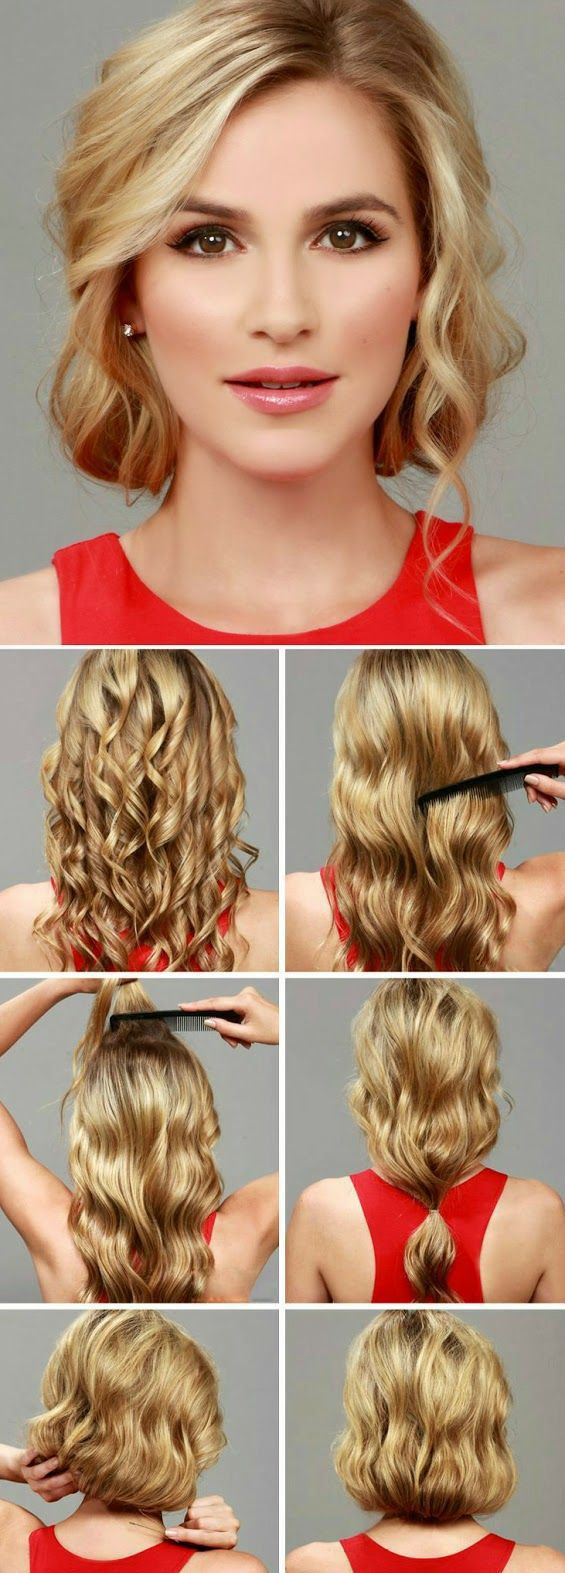 1920S Hairstyles For Long Hair Custom Short Bob With Long Hair  Beauty Zone  Hair  Pinterest  Short